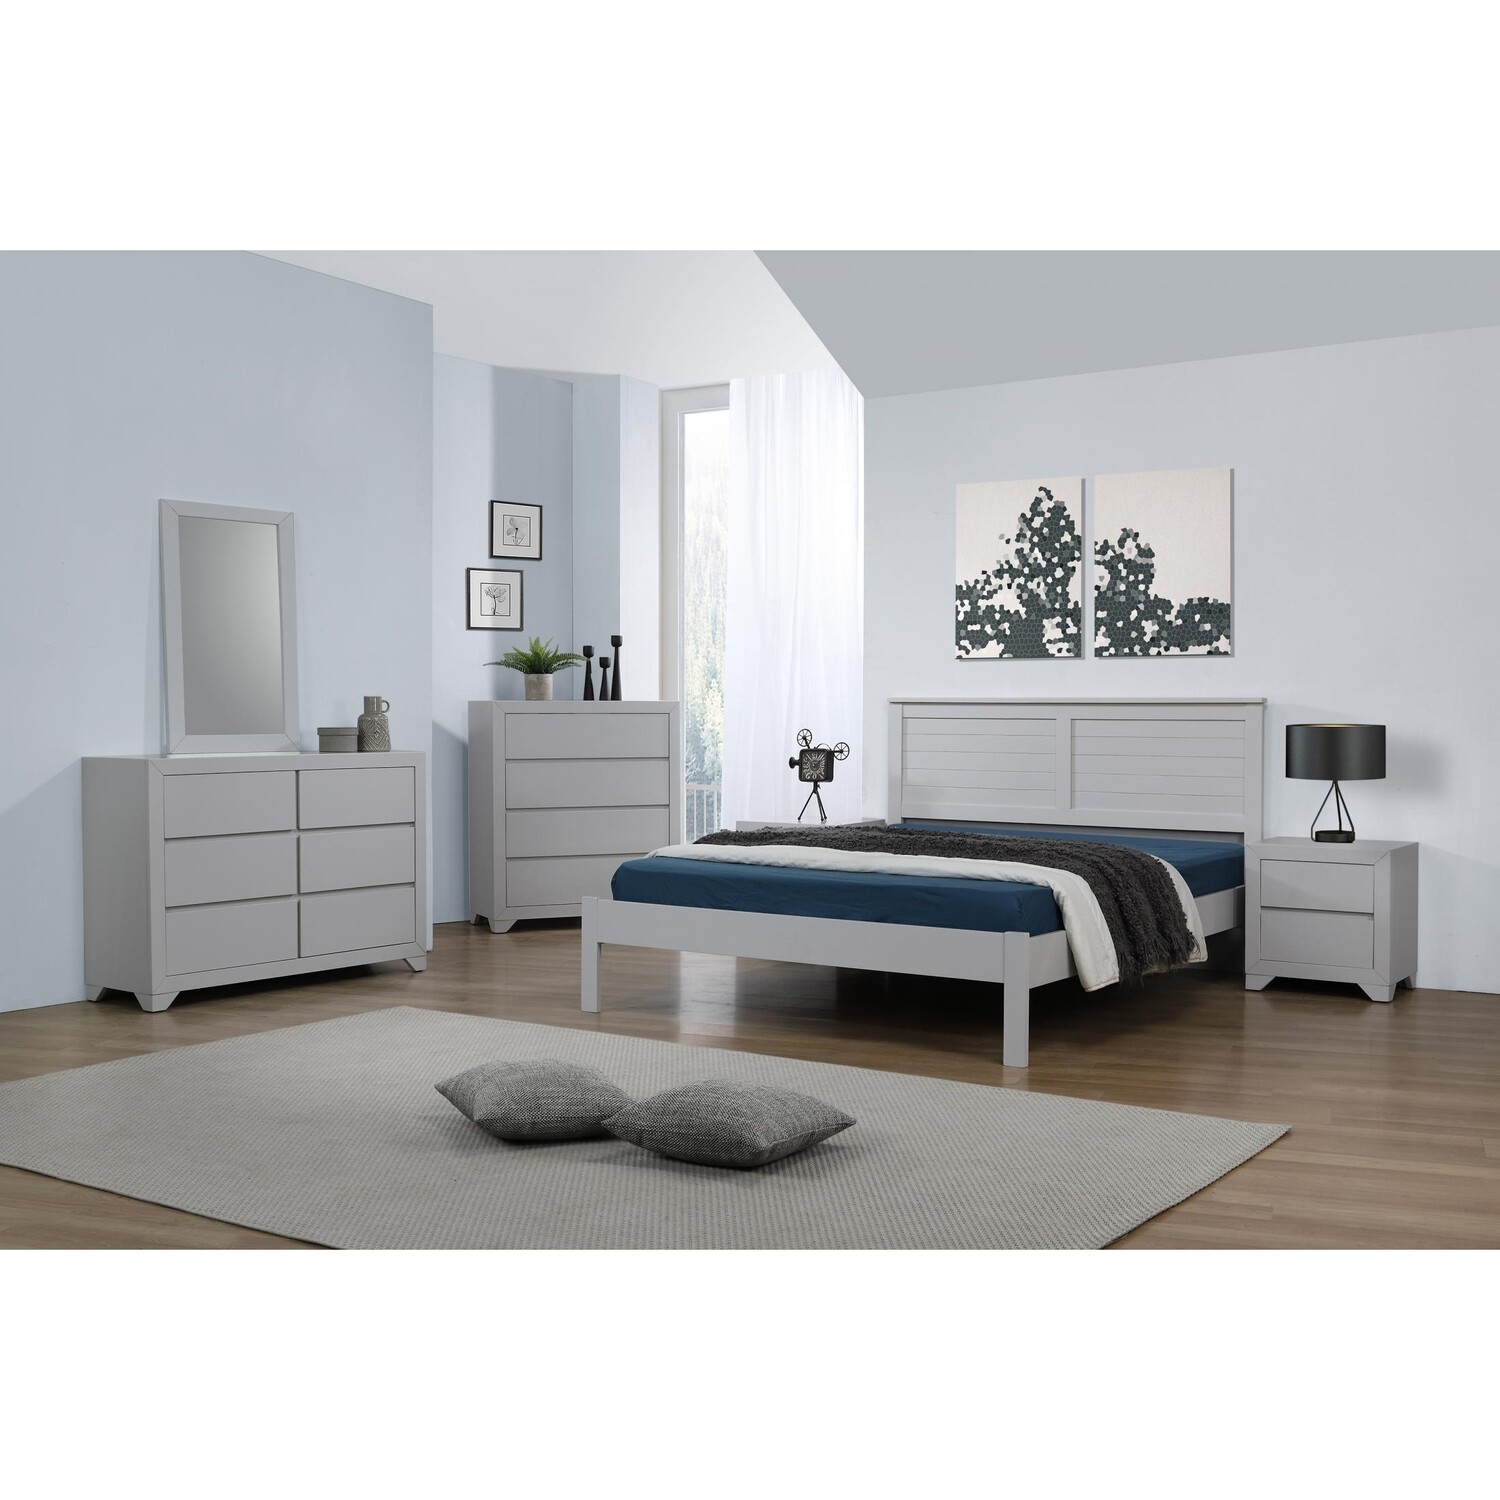 Wilmot double bed